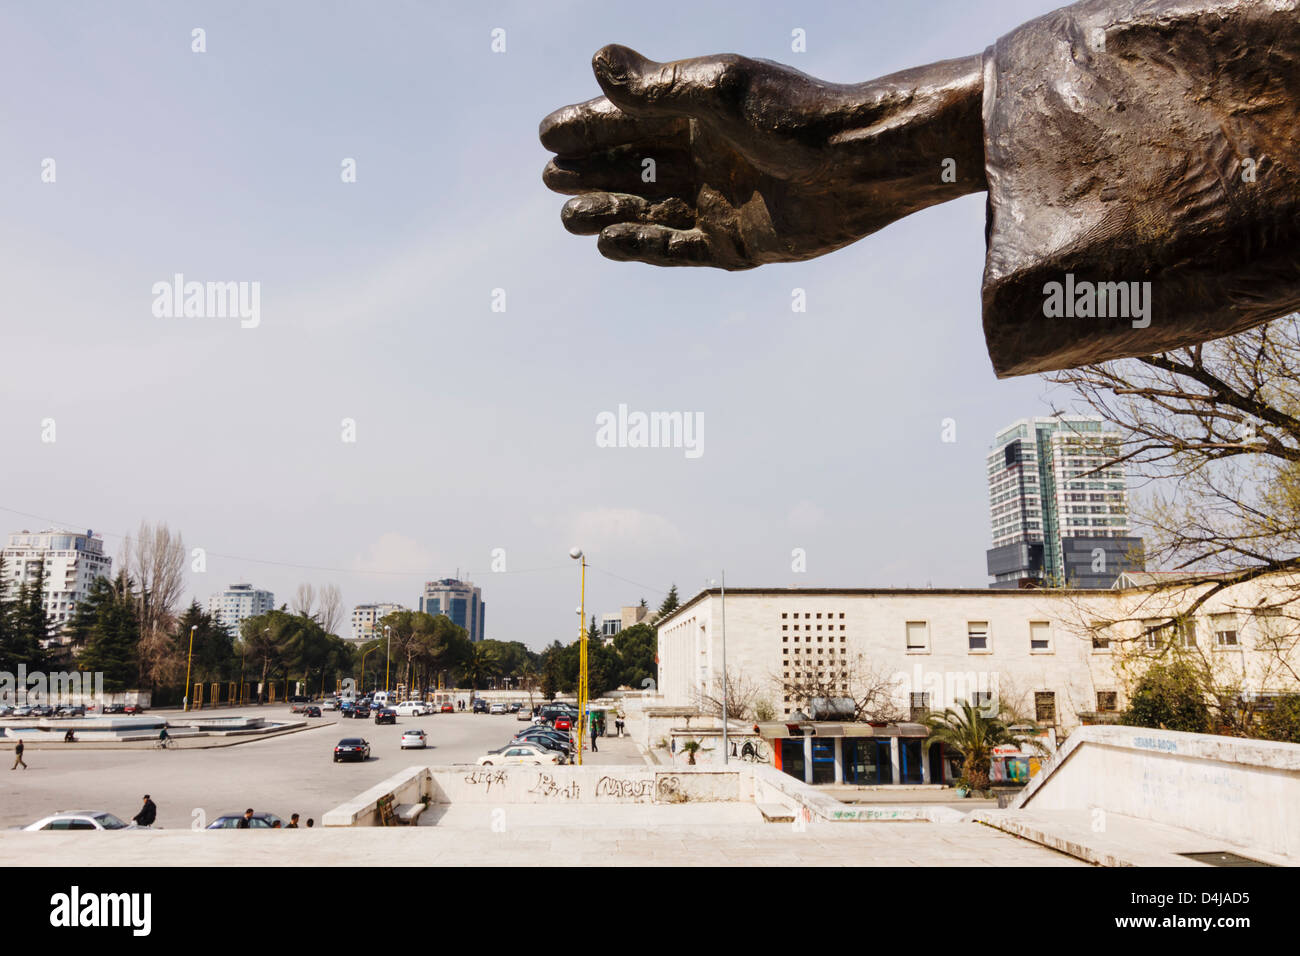 Mother Teresa statue in Tirana, Albania - Stock Image